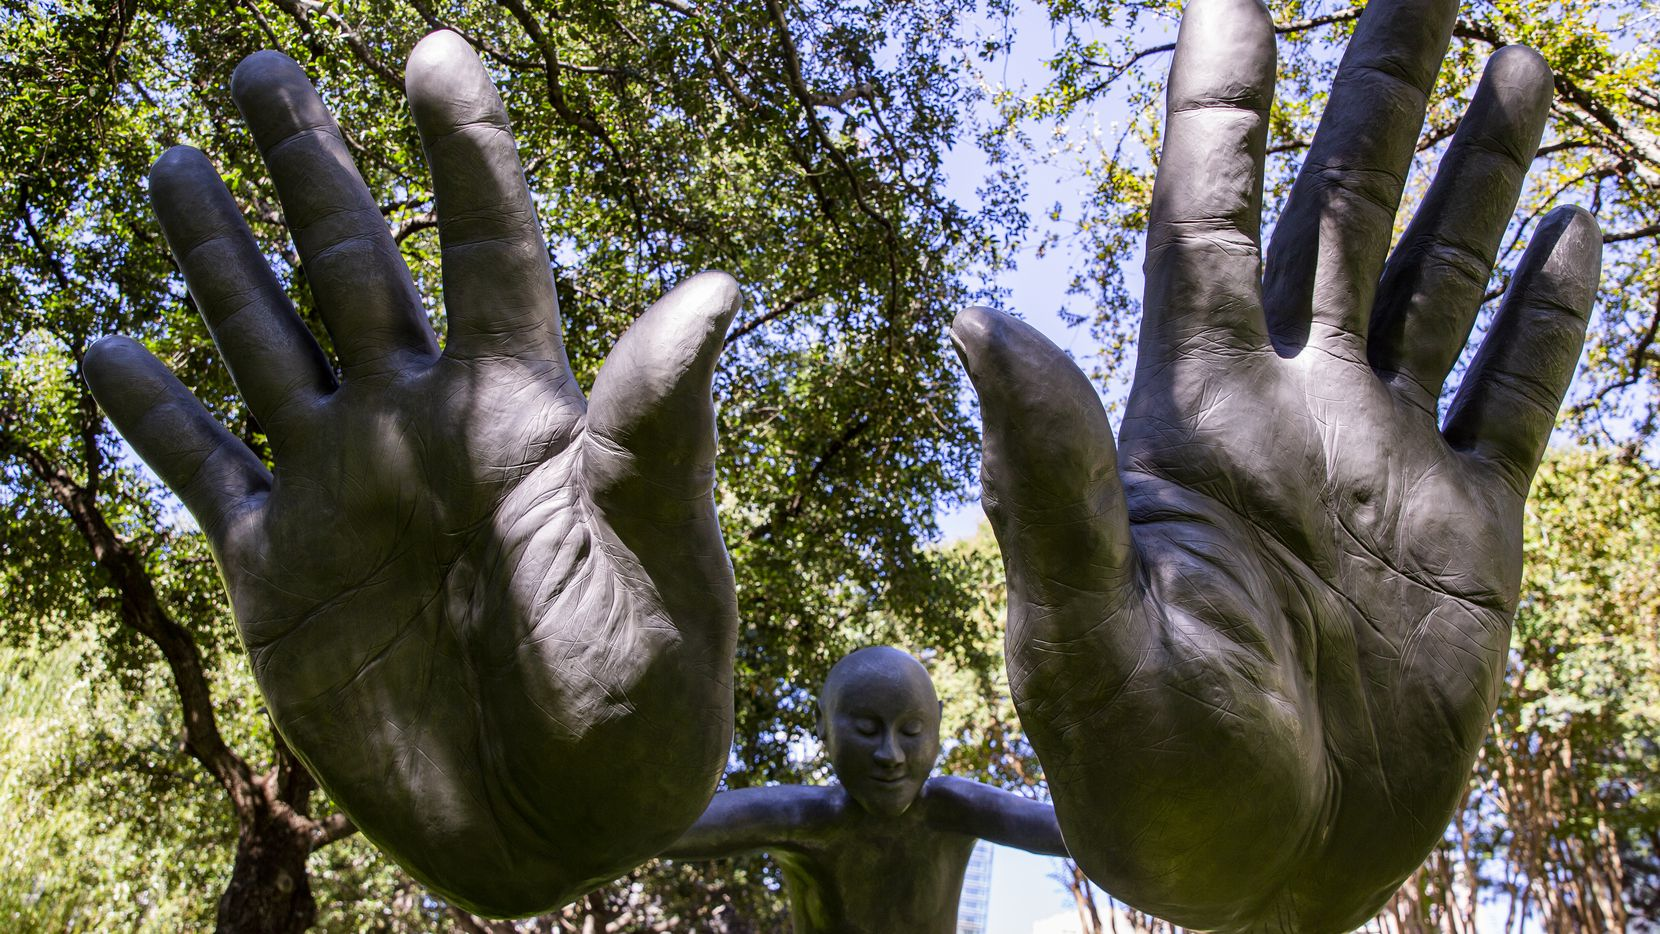 """bighands"" by Dallas artist Nic Nicosia was recently acquired by the Nasher and installed in the sculpture garden."